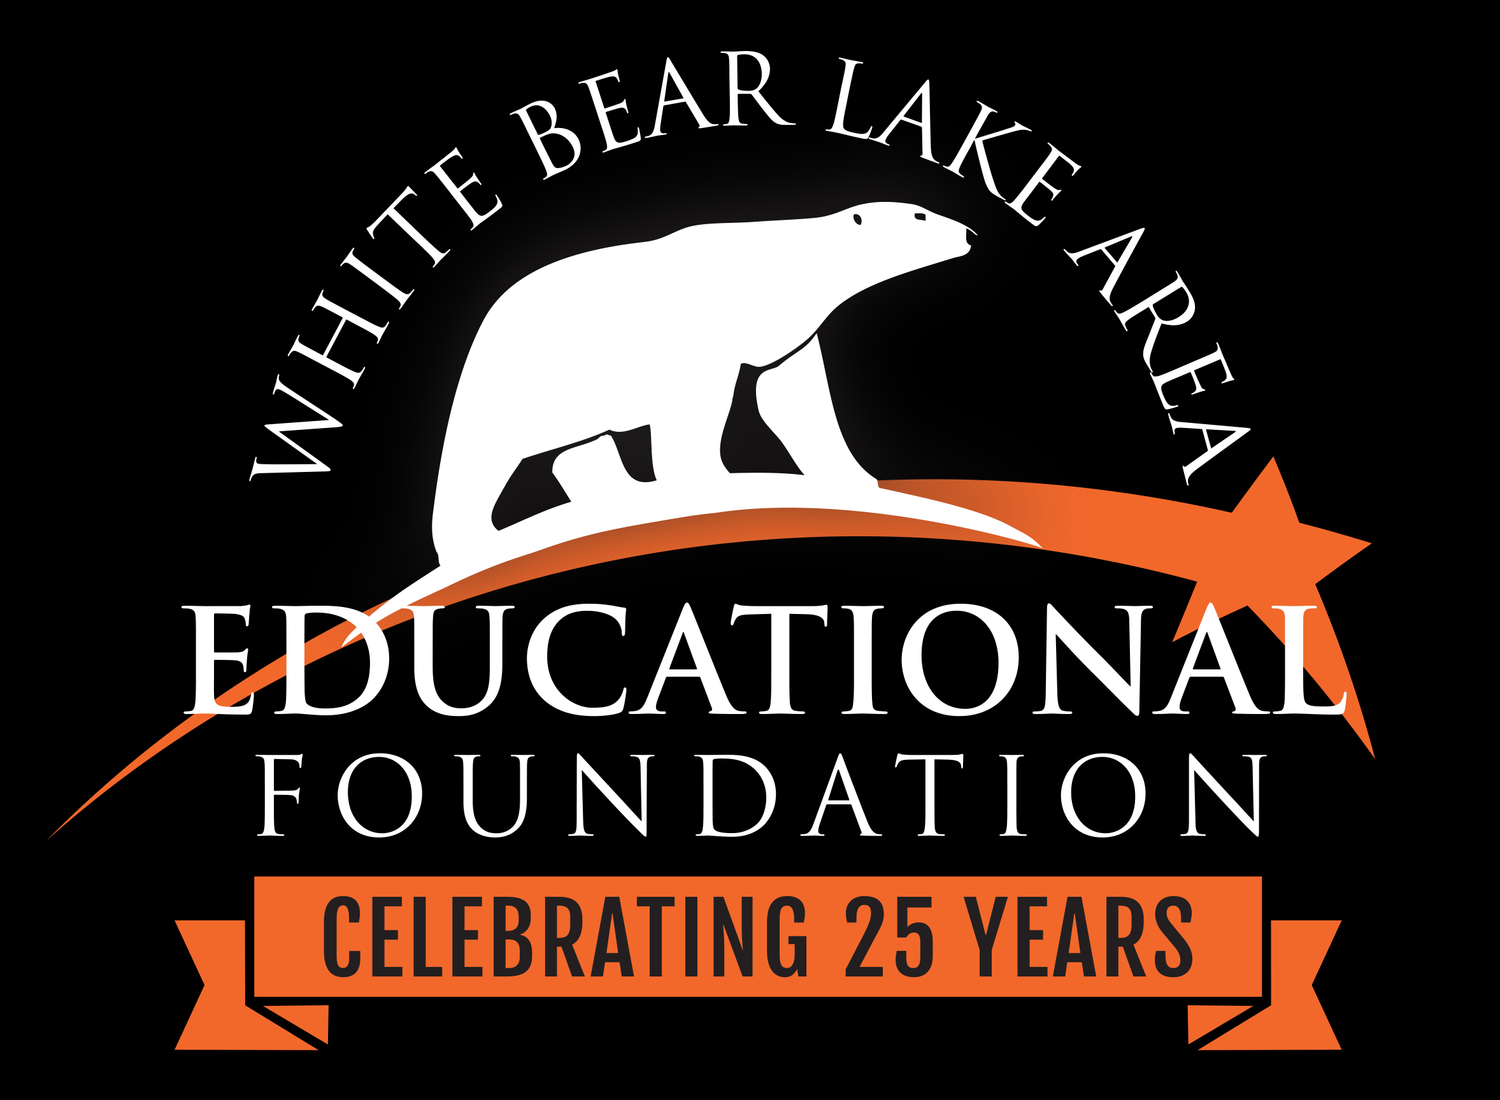 White Bear Lake Area Educational Foundation